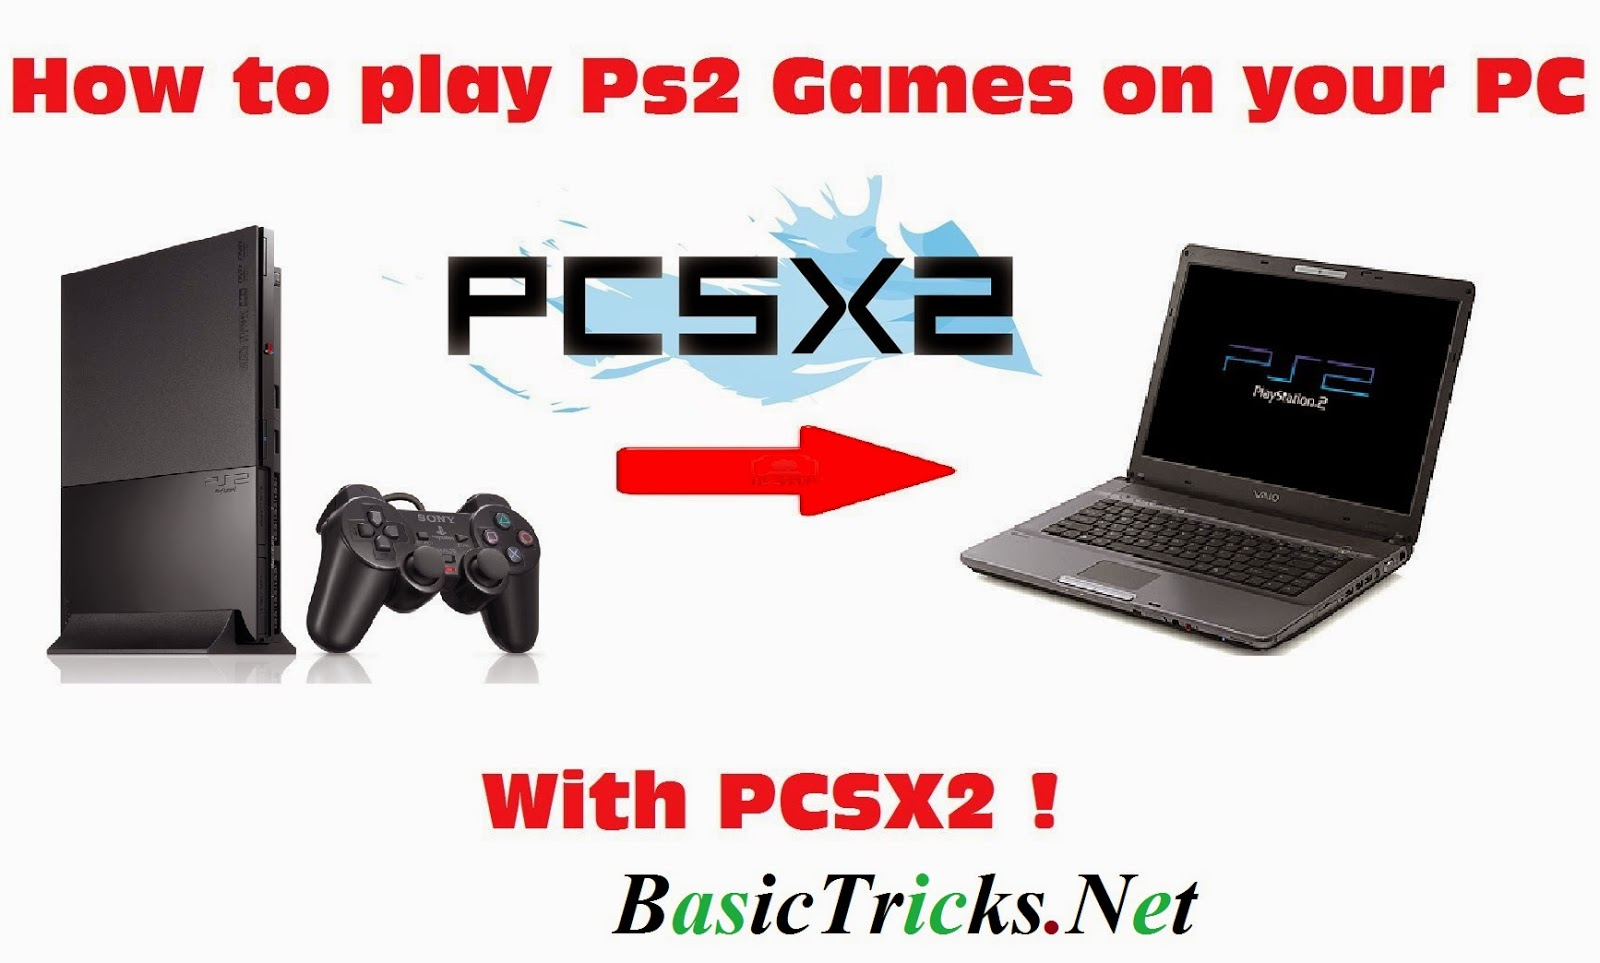 How to Play PS2 Games on PC or Laptop Right Now within 5 Minutes